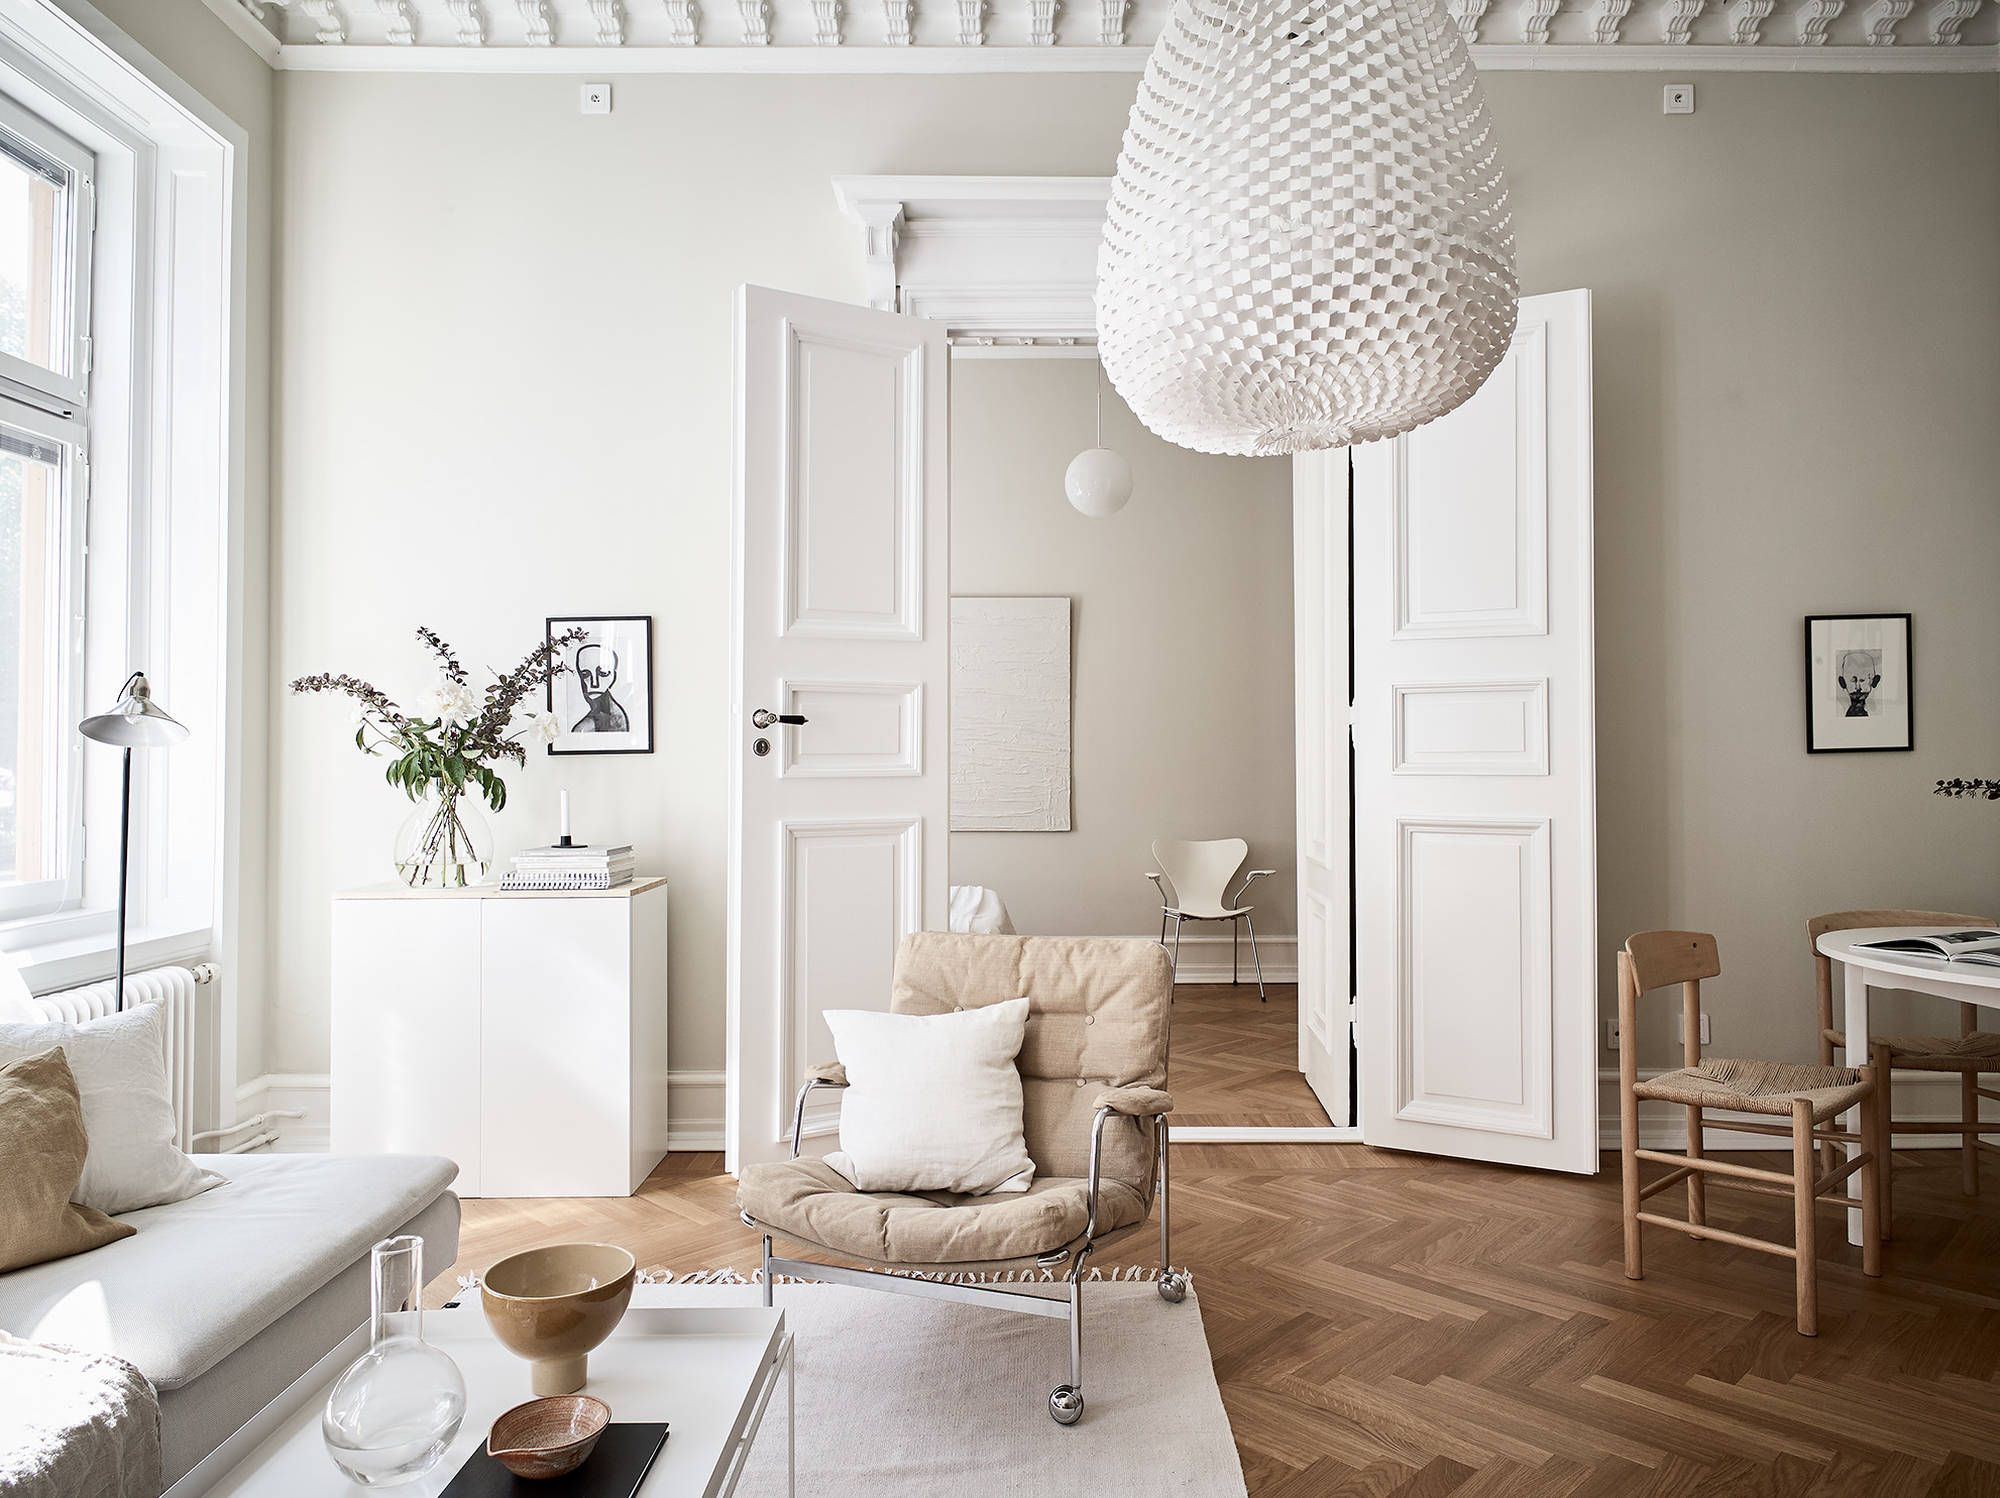 A Small Apartment In Sweden, Newly Renovated In Tones Of